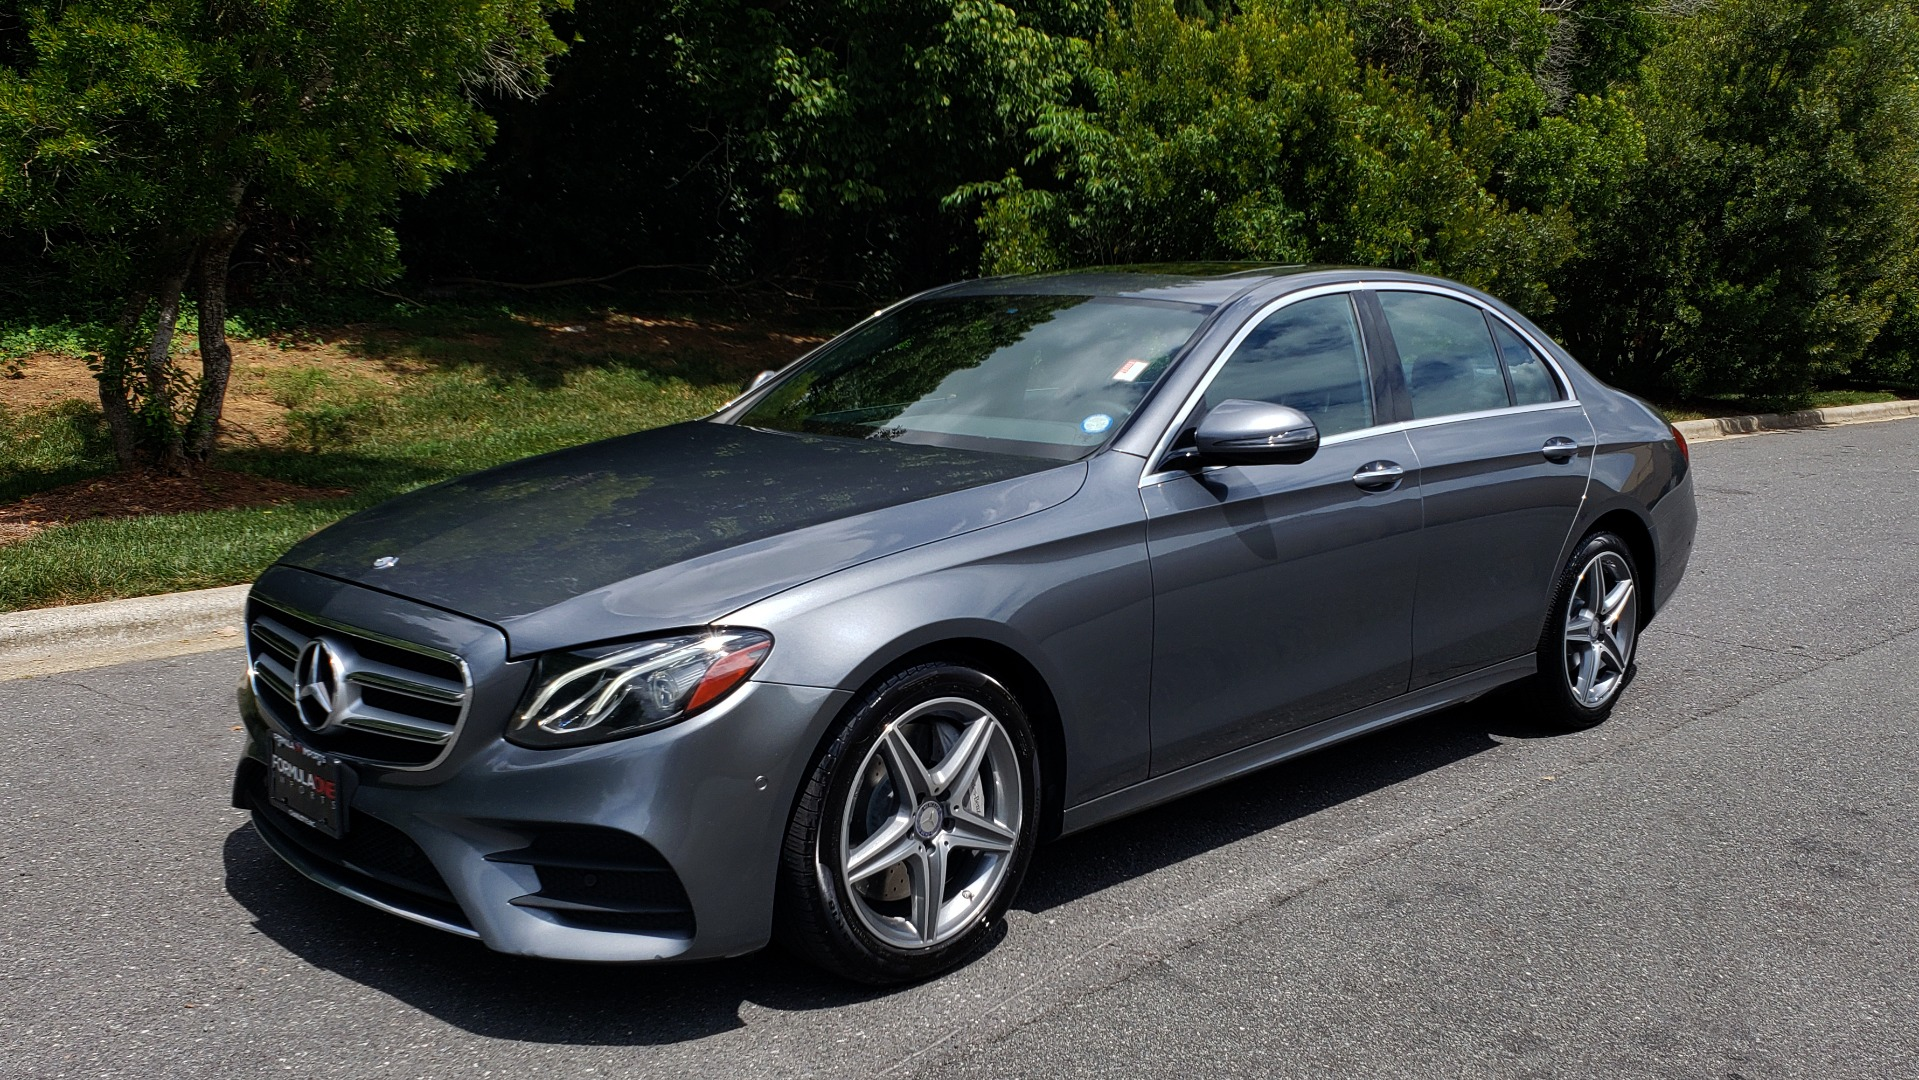 Used 2017 Mercedes-Benz E-CLASS E 300 SPORT 4MATIC / PREM PKG / NAV / SUNROOF / BURMESTER SND / REARVIEW for sale Sold at Formula Imports in Charlotte NC 28227 1